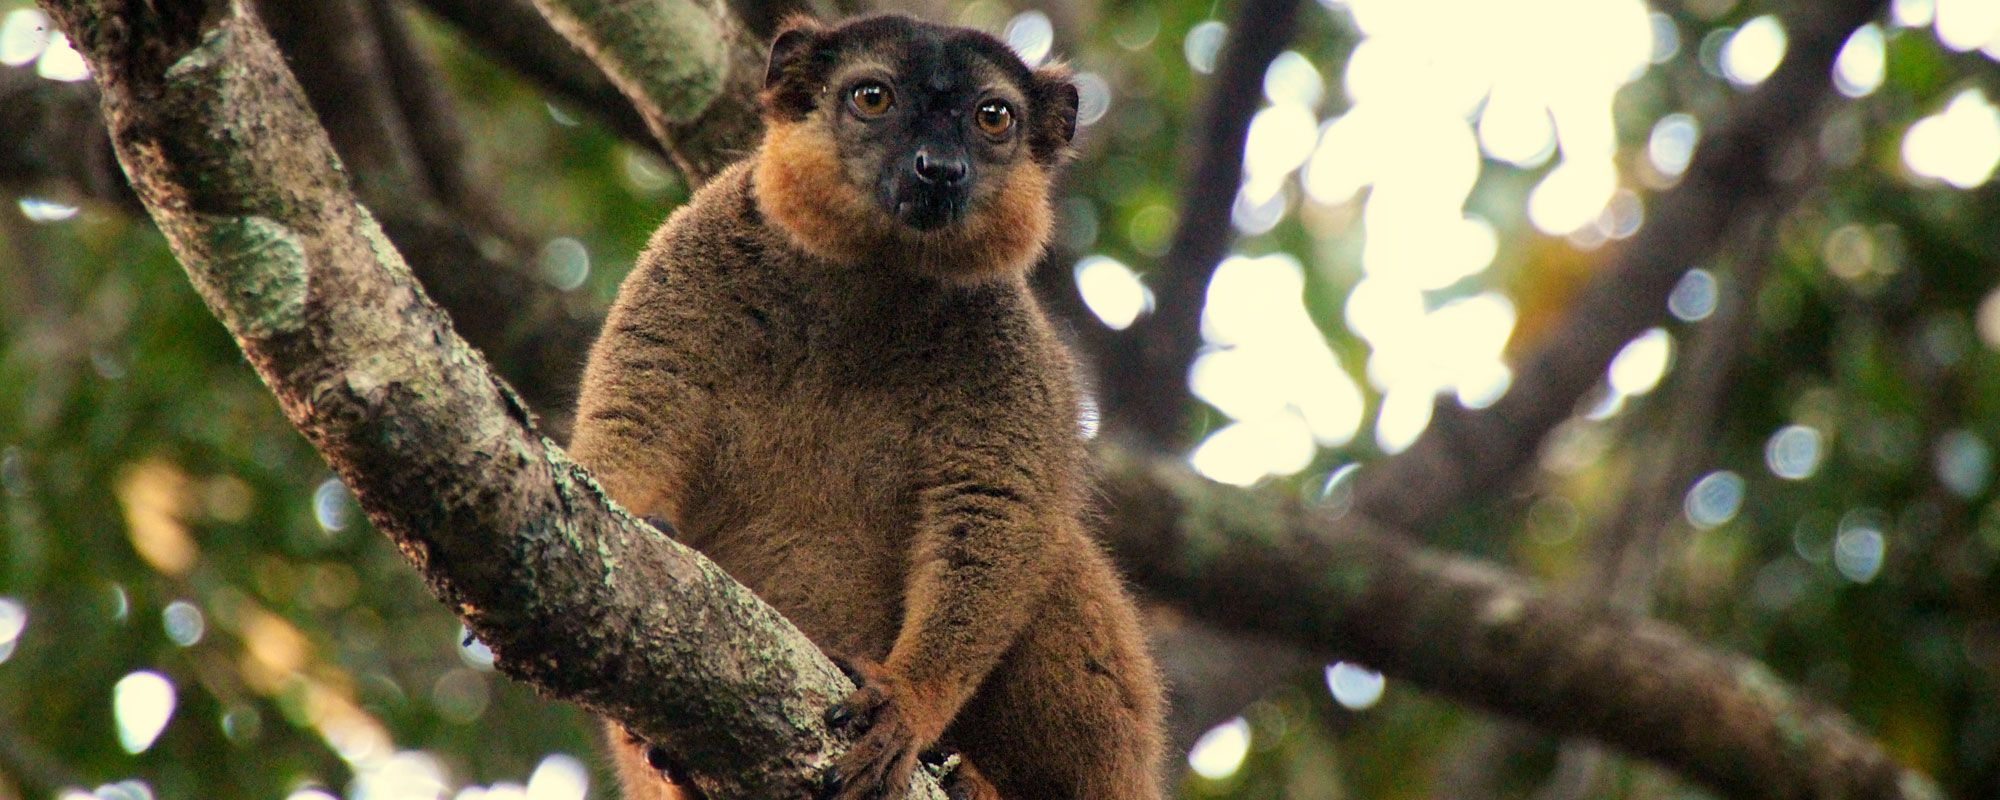 A collared brown lemur, eulemur collaris, in a tree